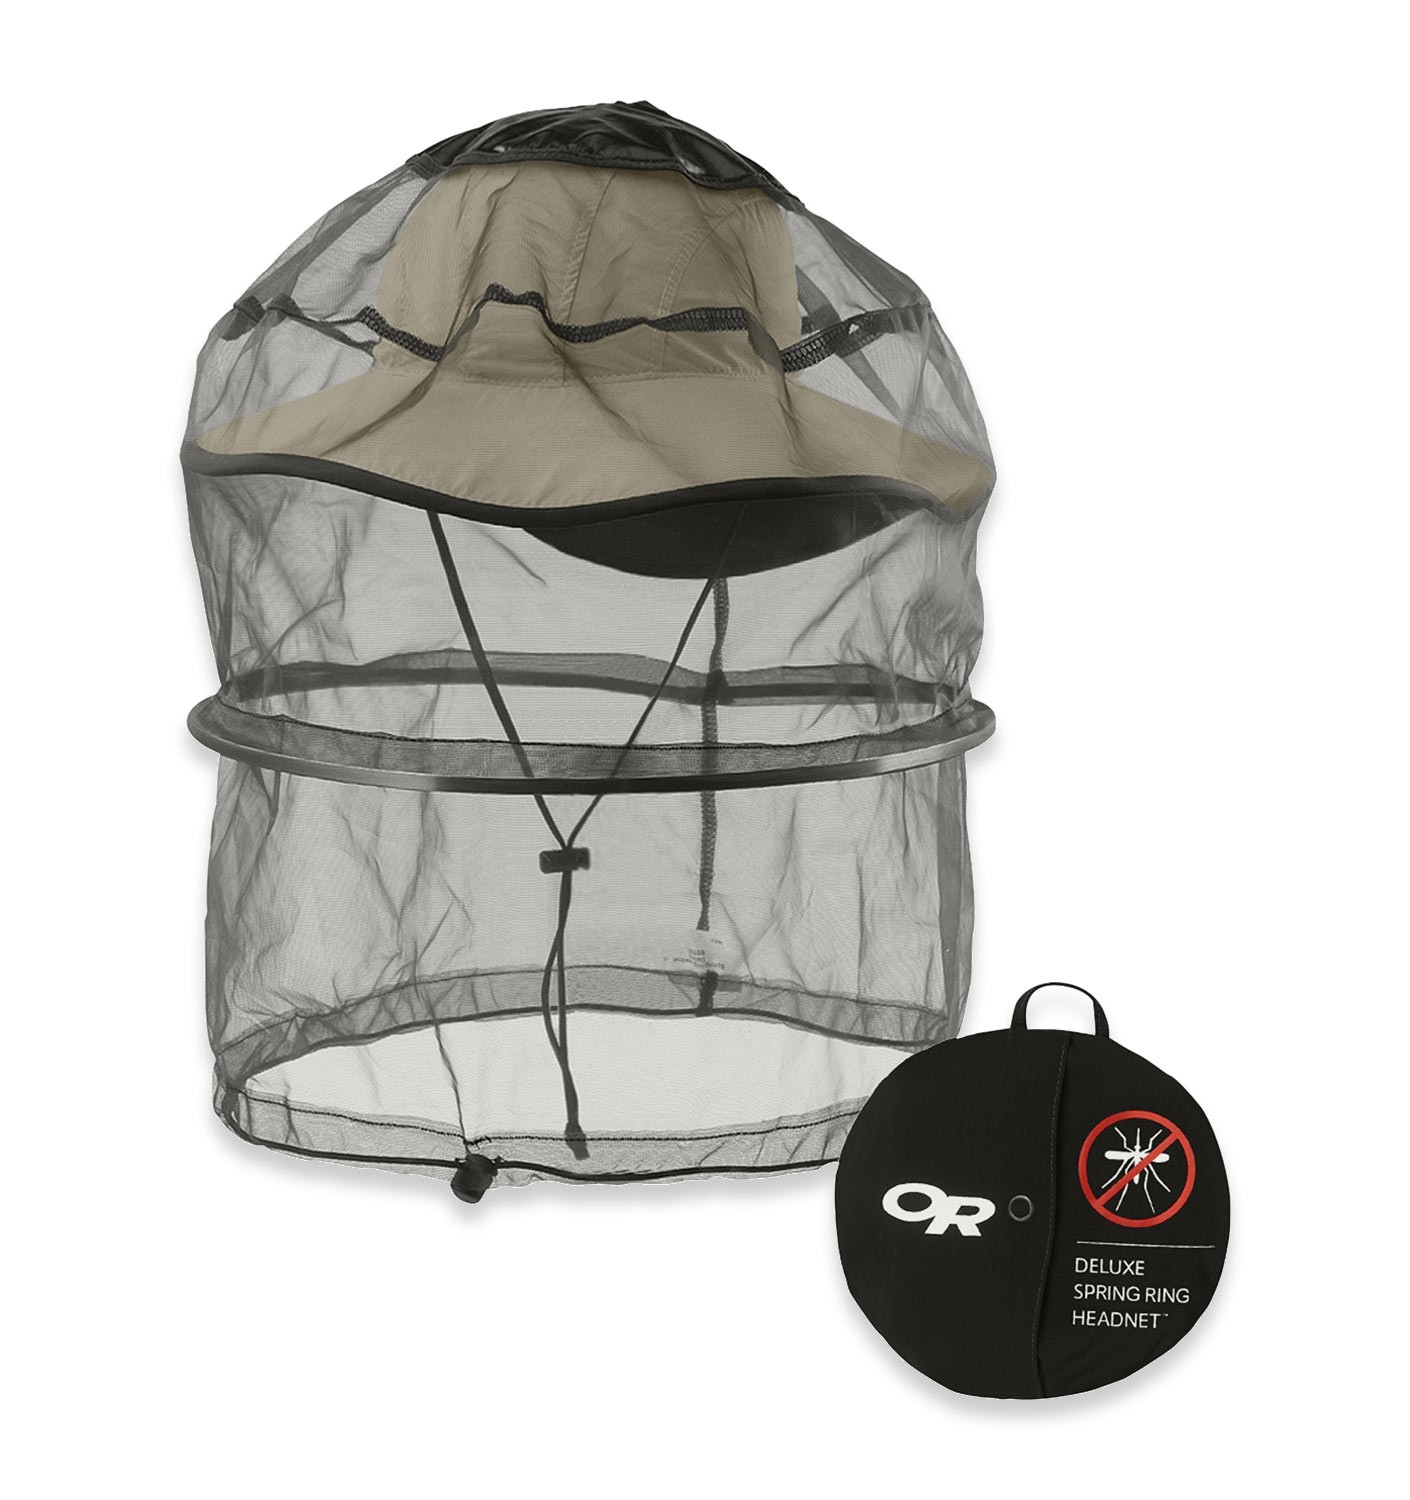 Outdoor Research Deluxe Spring Ring Headnet�